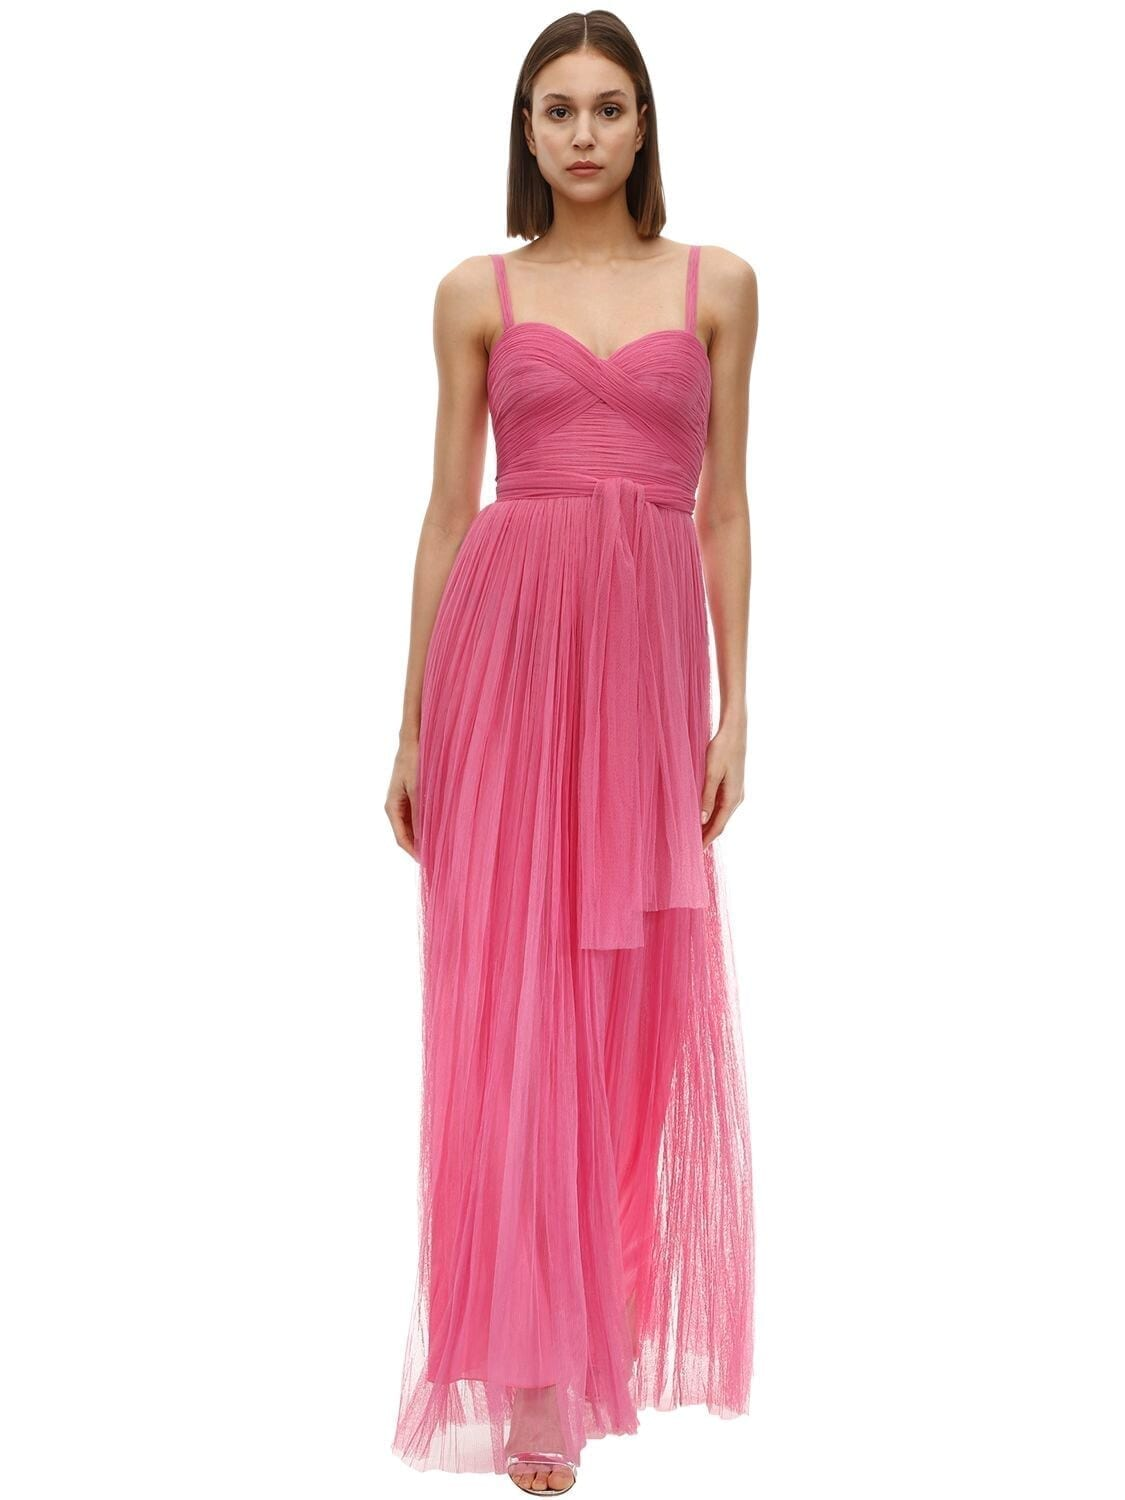 MARIA LUCIA HOHAN Estel Tulle Long Dress